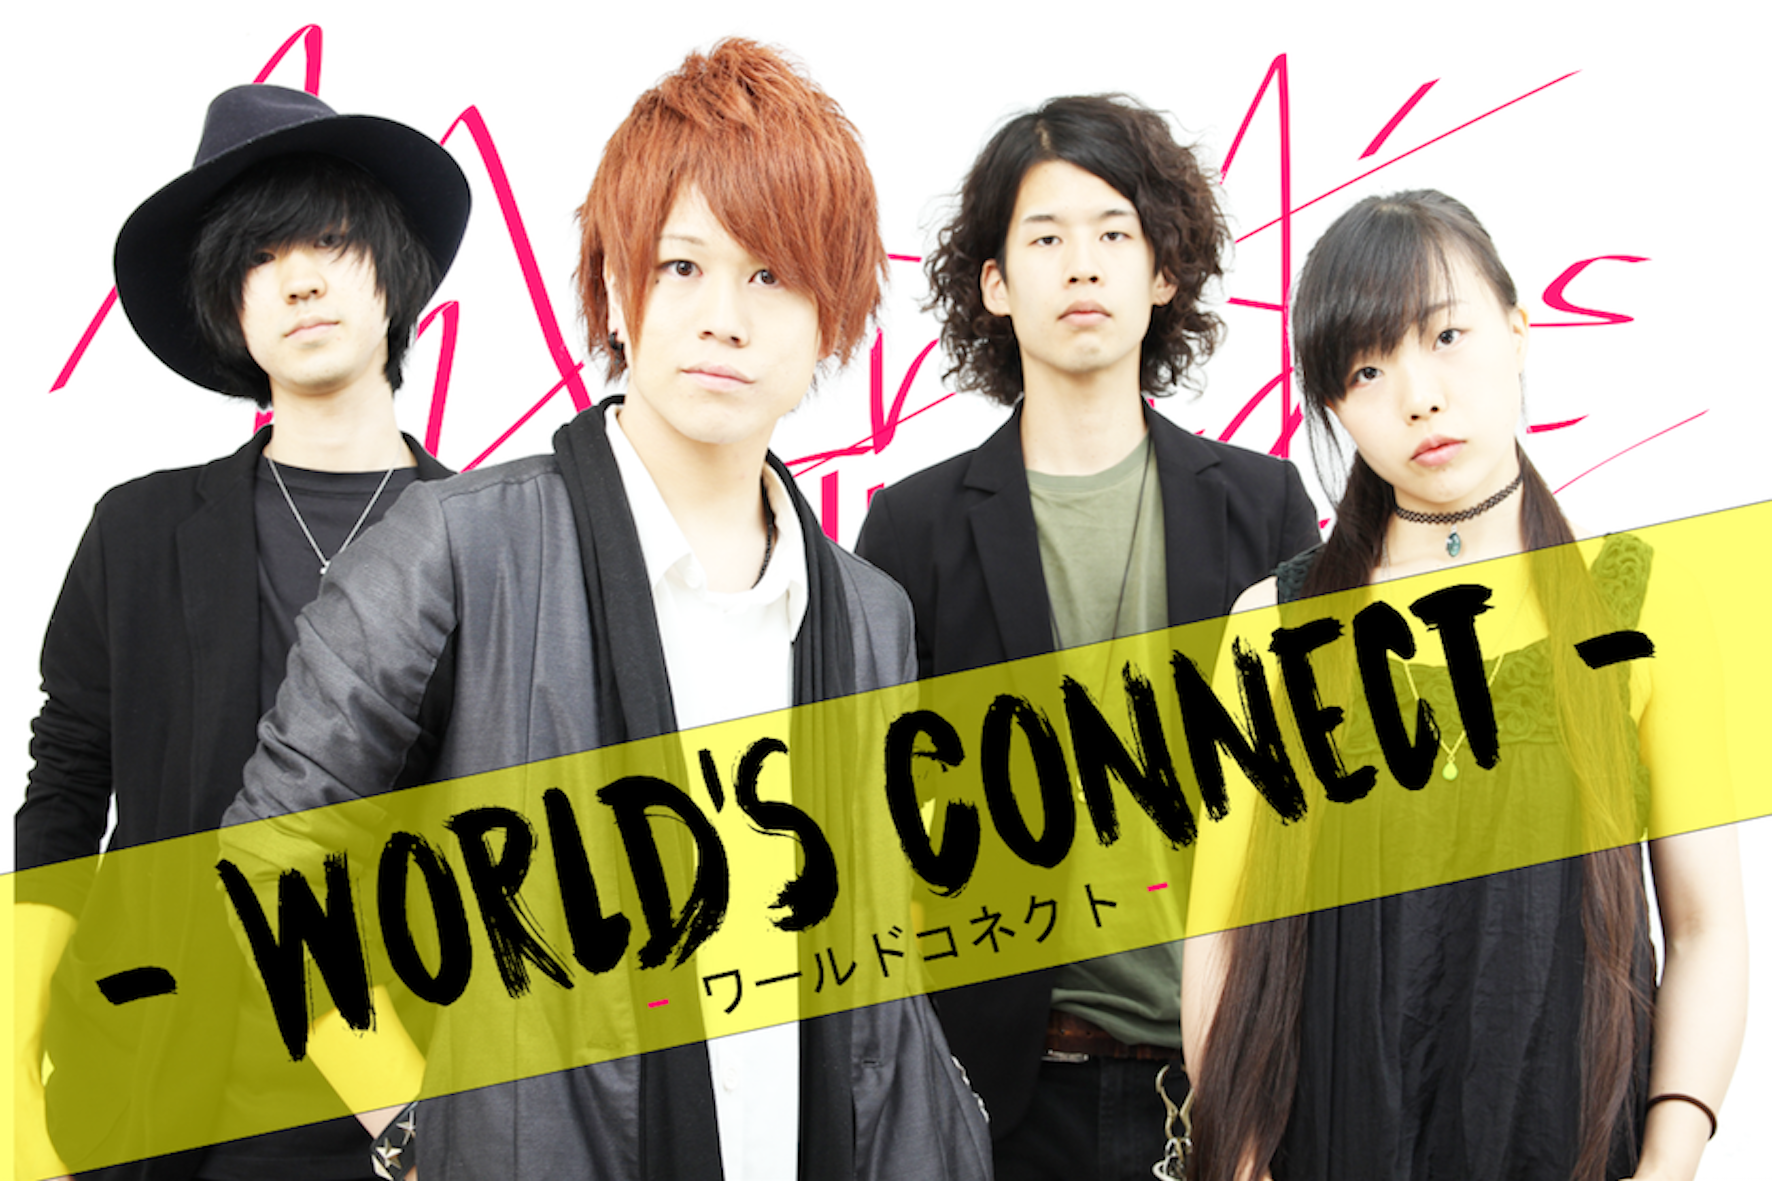 World's Connect 初のLIVE MV 製作に挑戦!!!